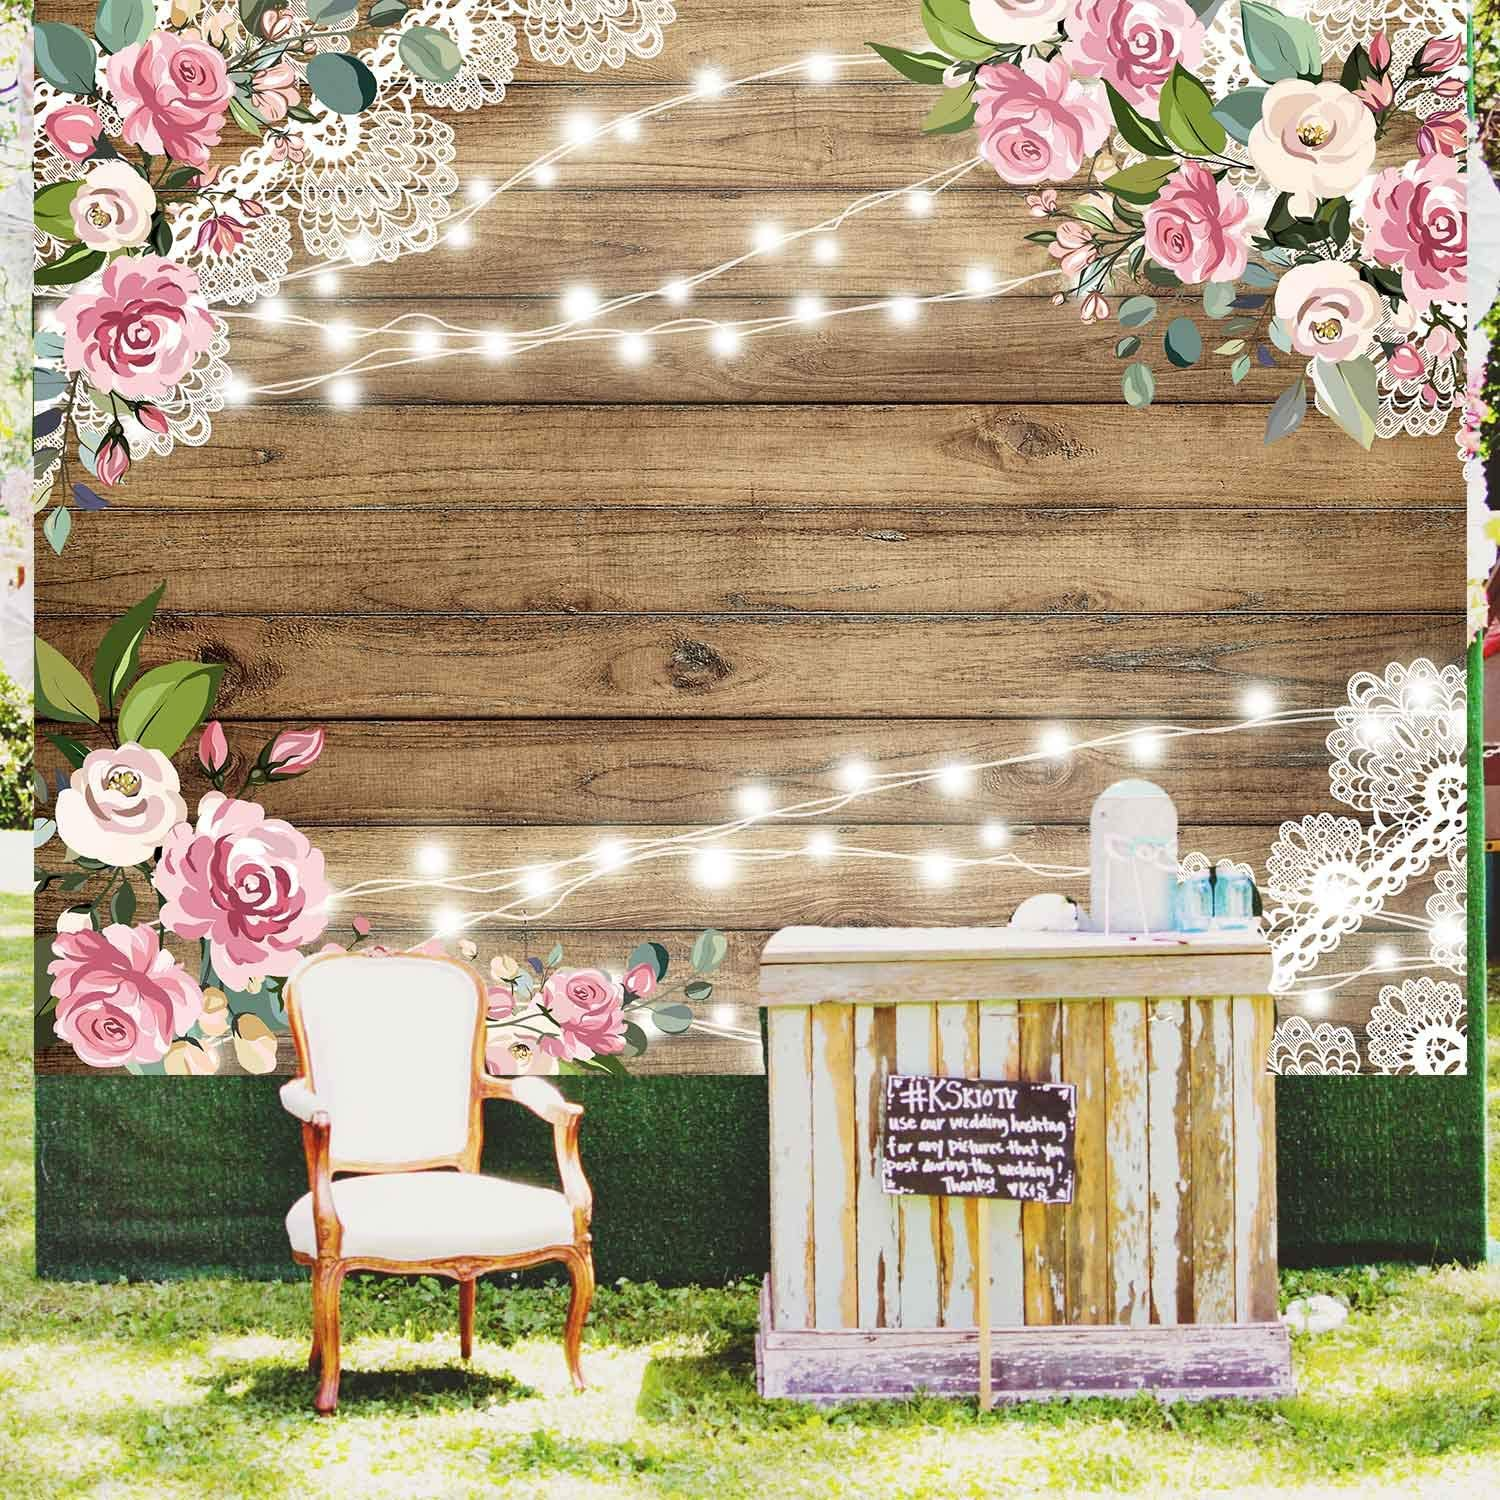 Amazon Com Wood Wedding Flowers Rustic Backdrop Floral Wooden